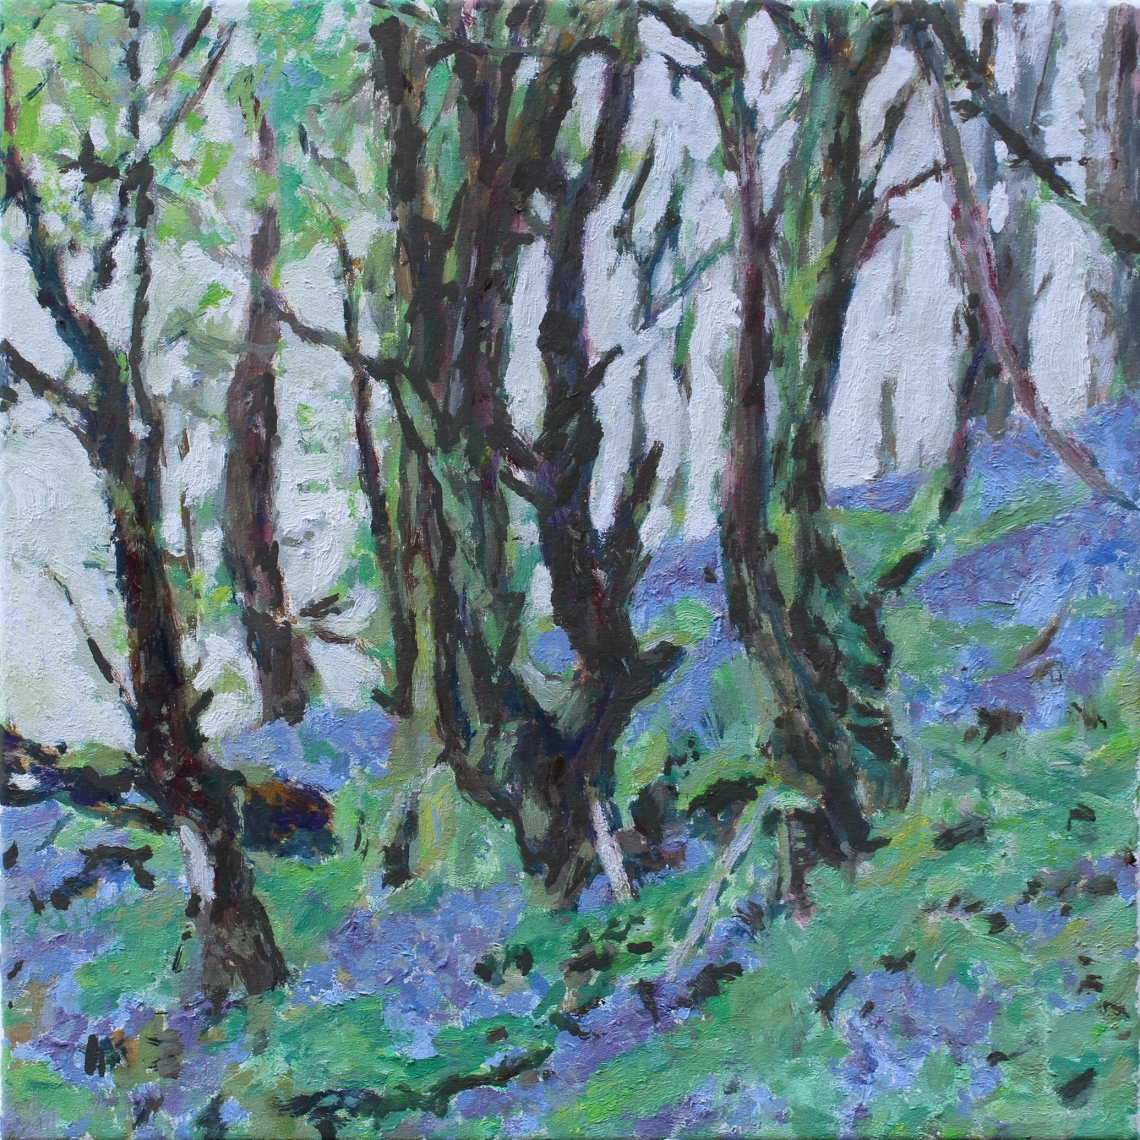 bluebell wood 4